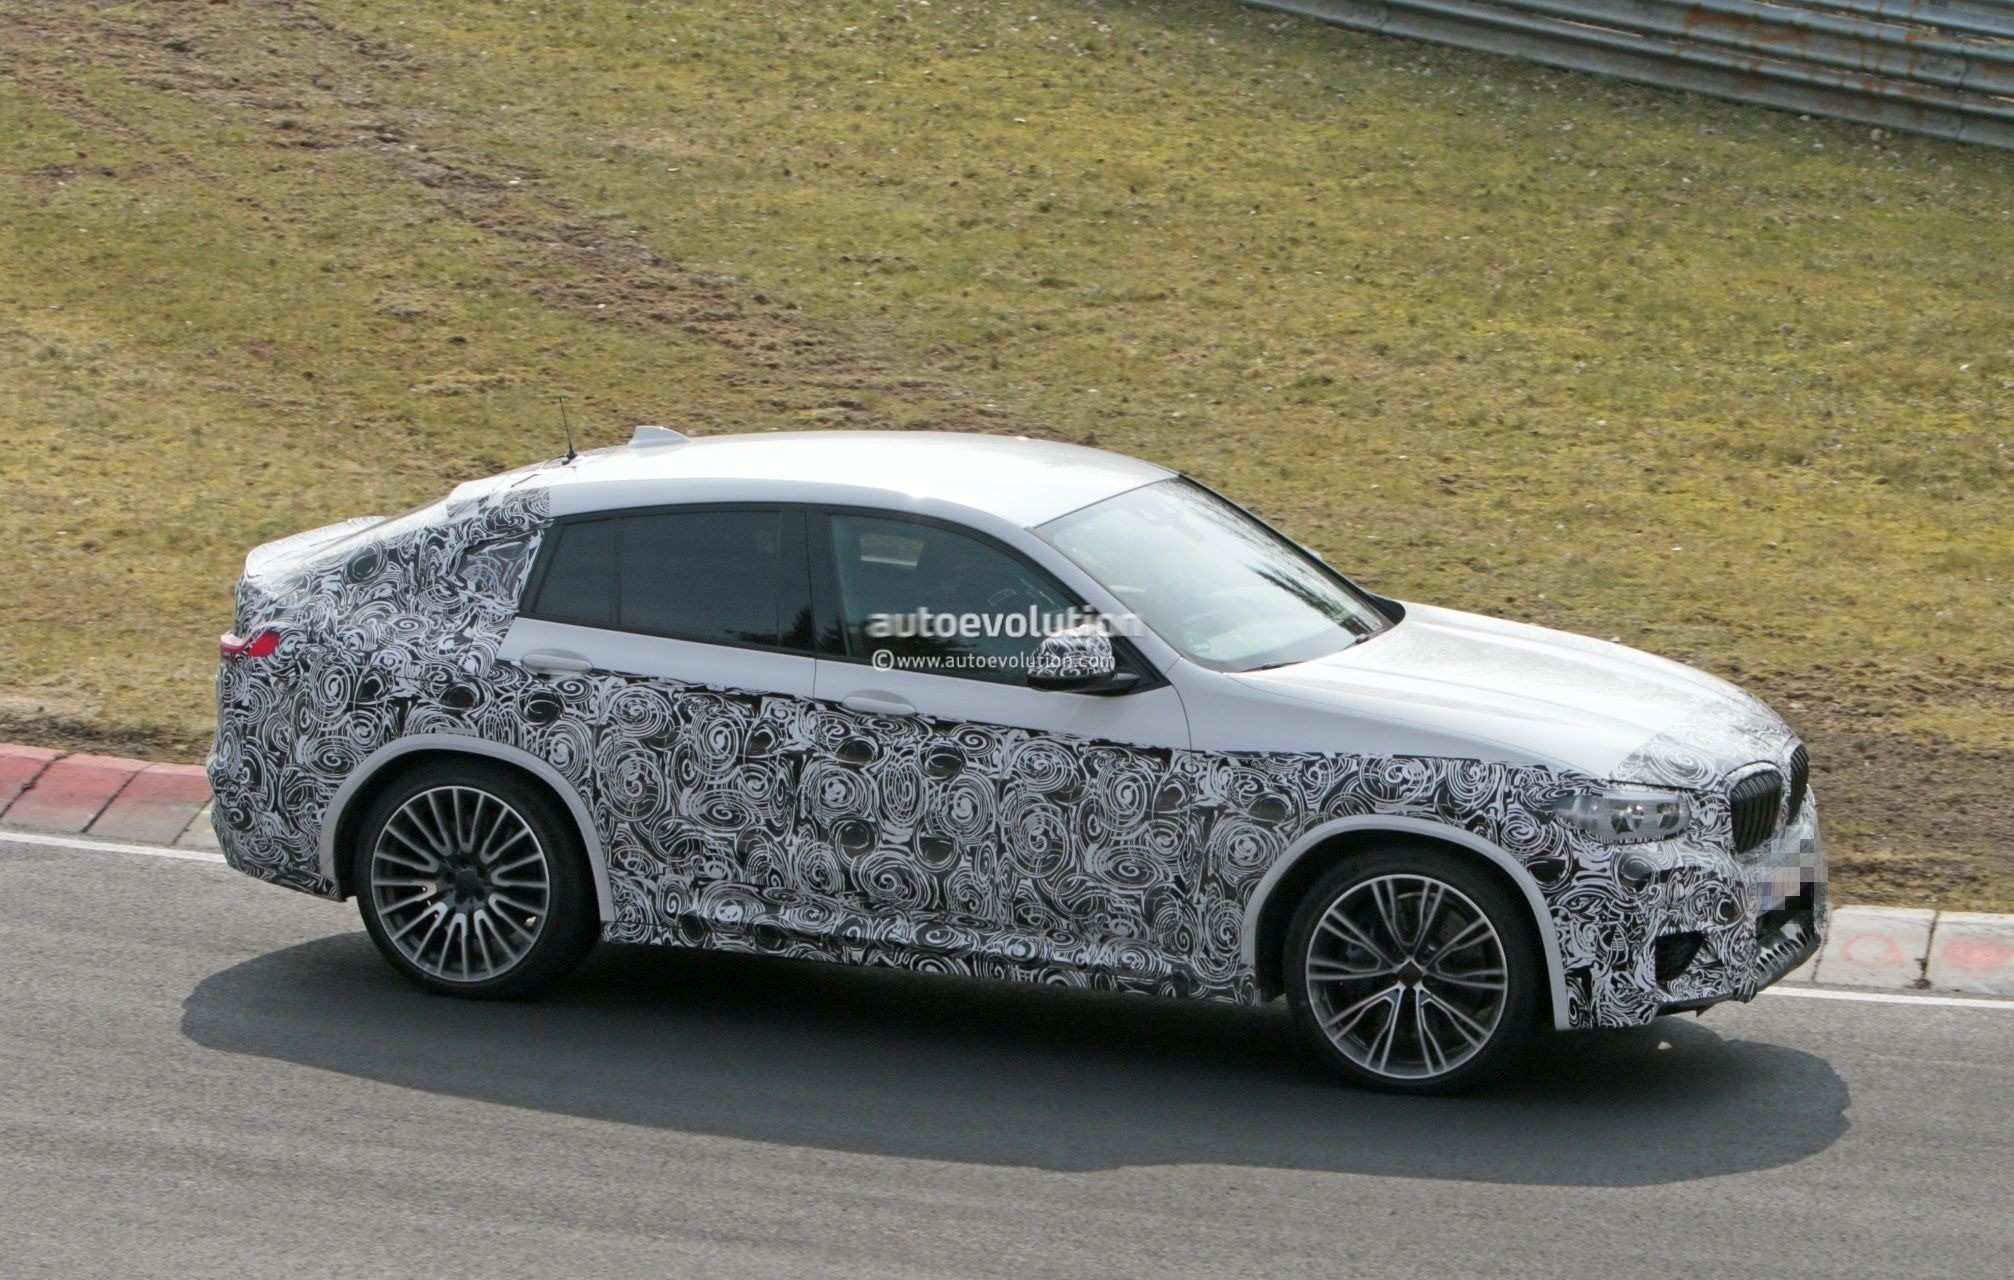 40 All New 2020 Bmw X4M Images by 2020 Bmw X4M